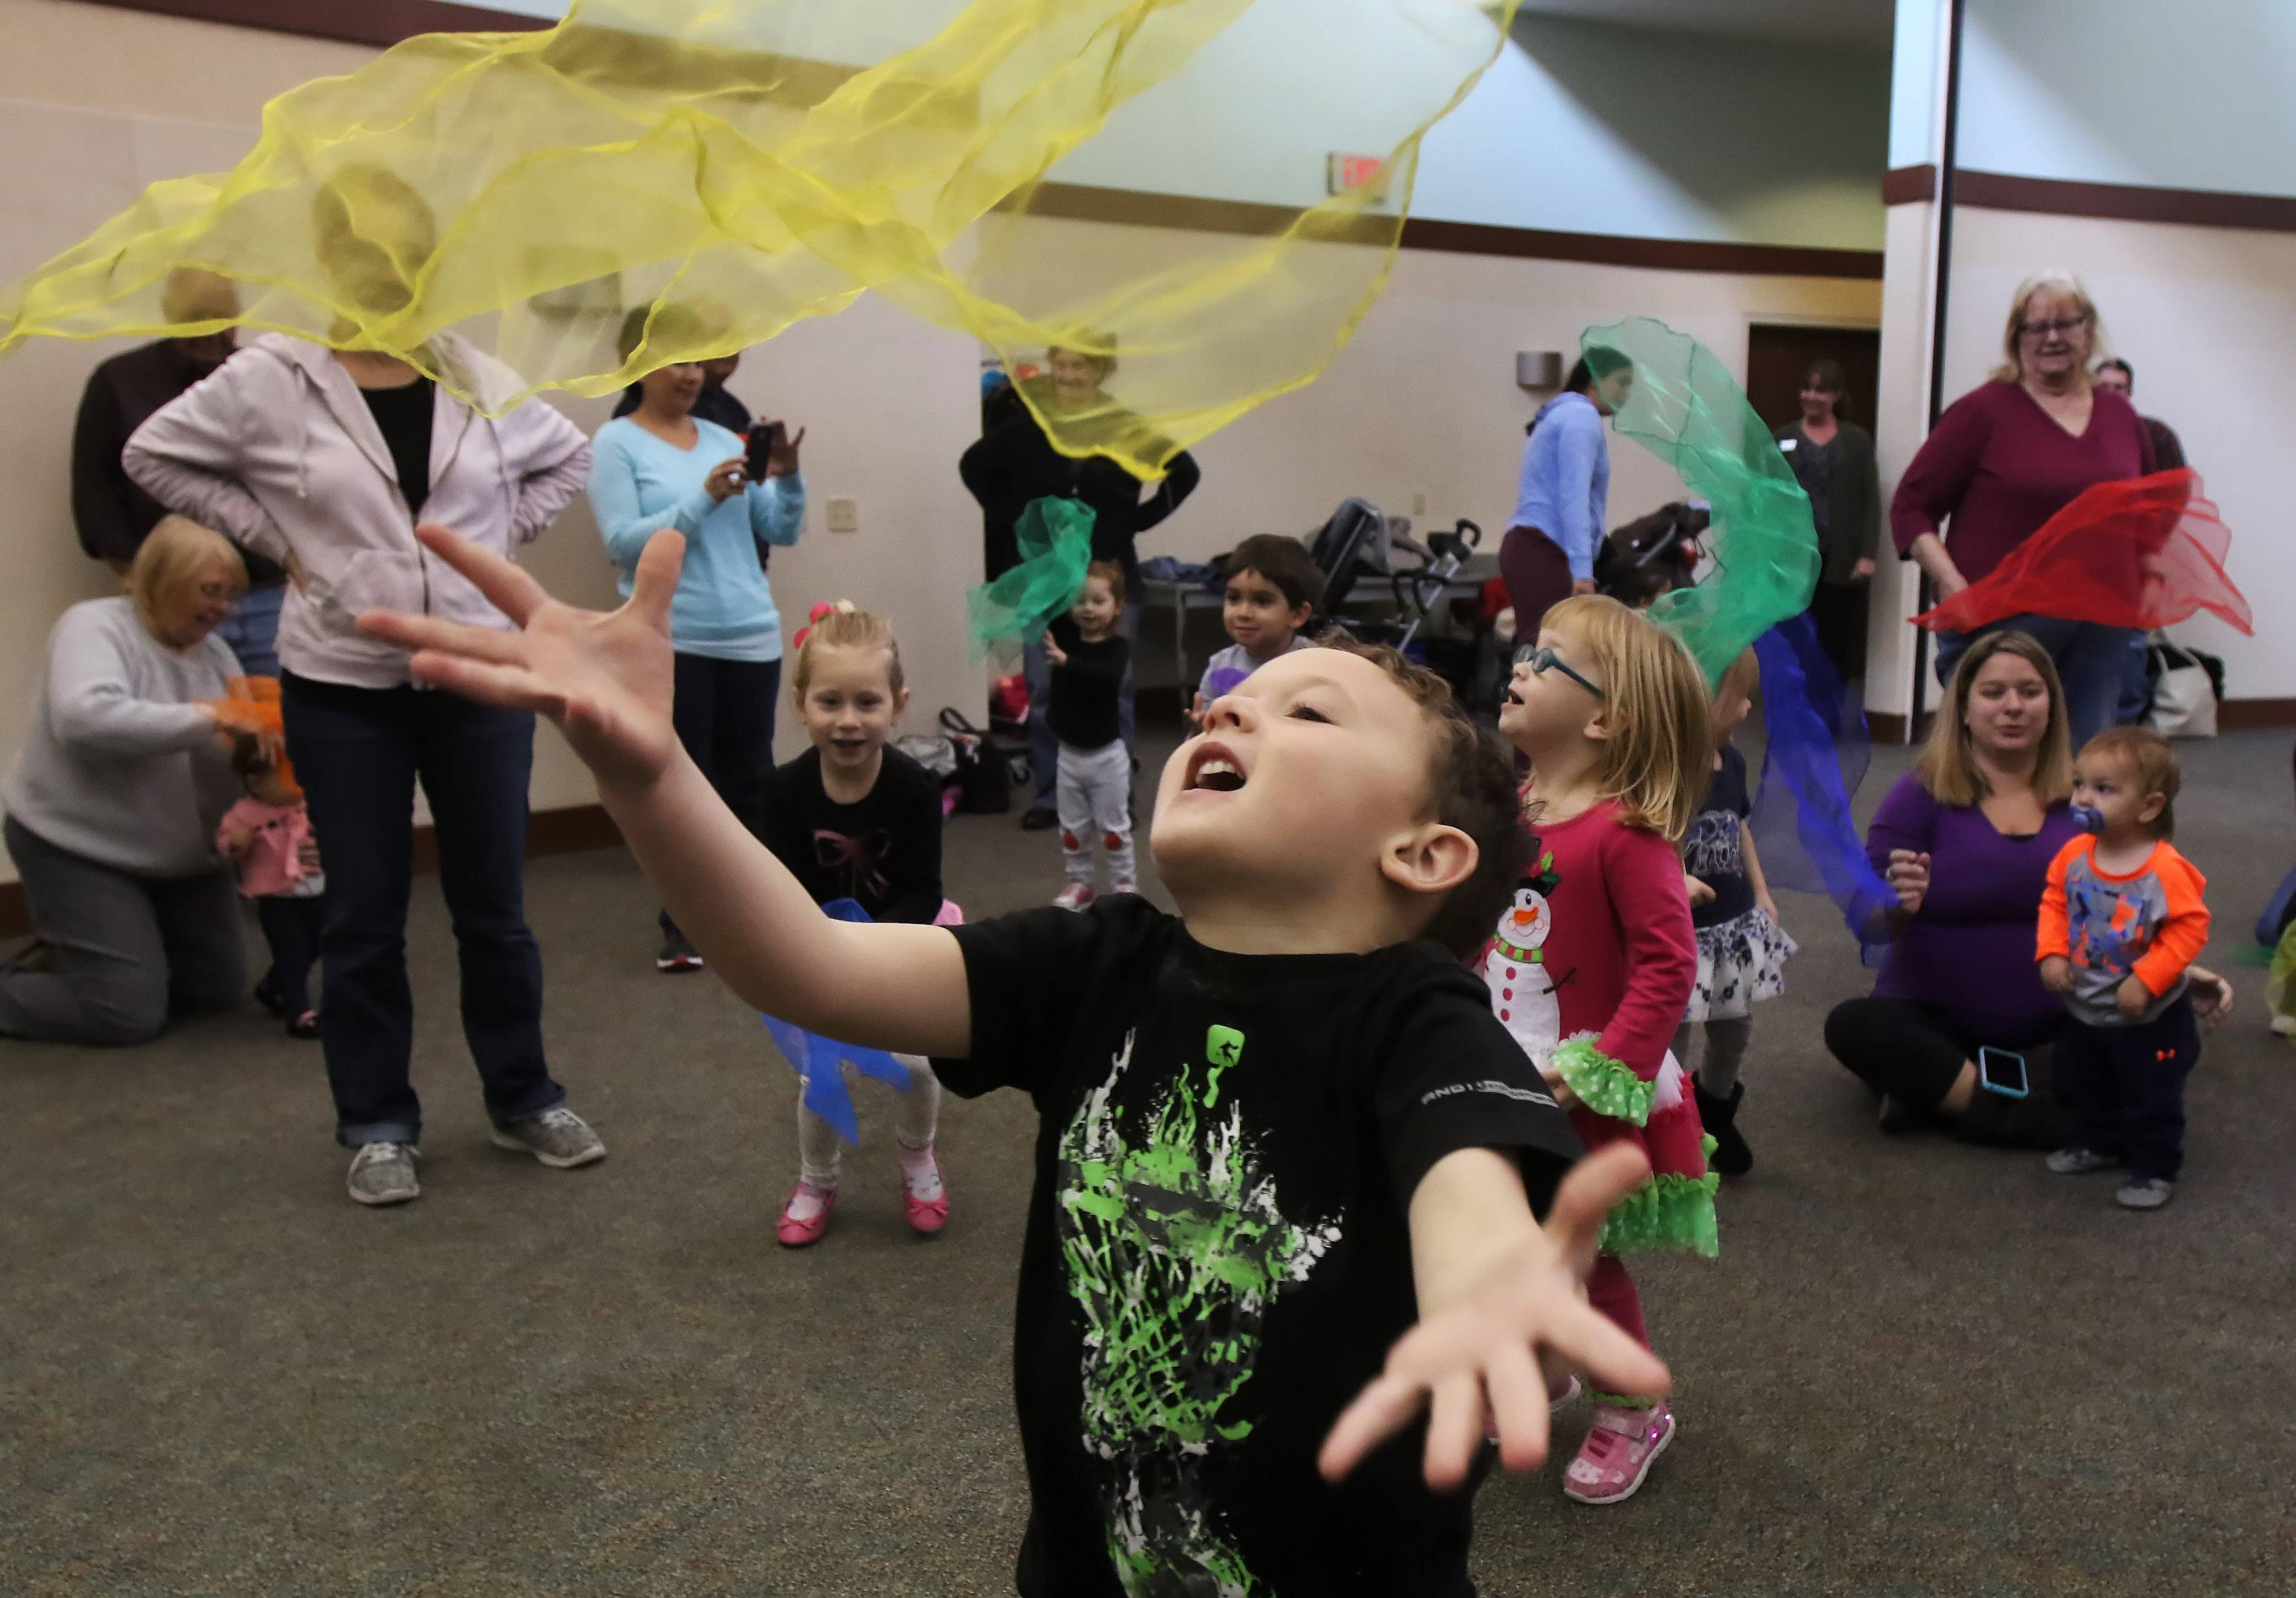 L.J. Haley, 5, throws up a scarf with other children Tuesday during the Family Dance Party at Lake Villa District Library. About 60 children, parents and caregivers danced and played instruments during the musical program.